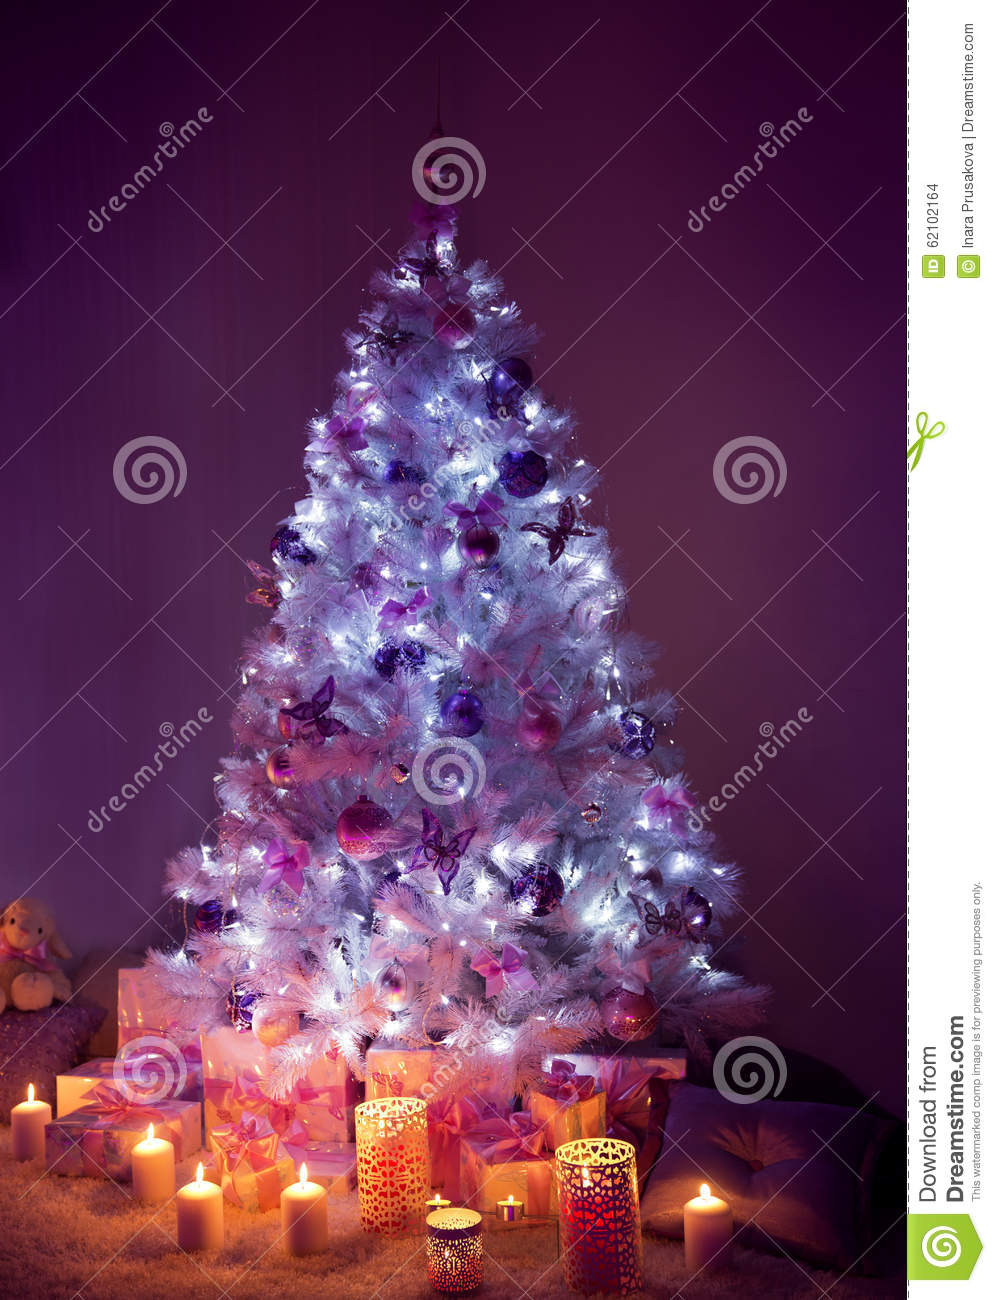 Christmas tree with presents and lights - Candles Christmas Dark Decorated Gifts Lights Night Presents Tree